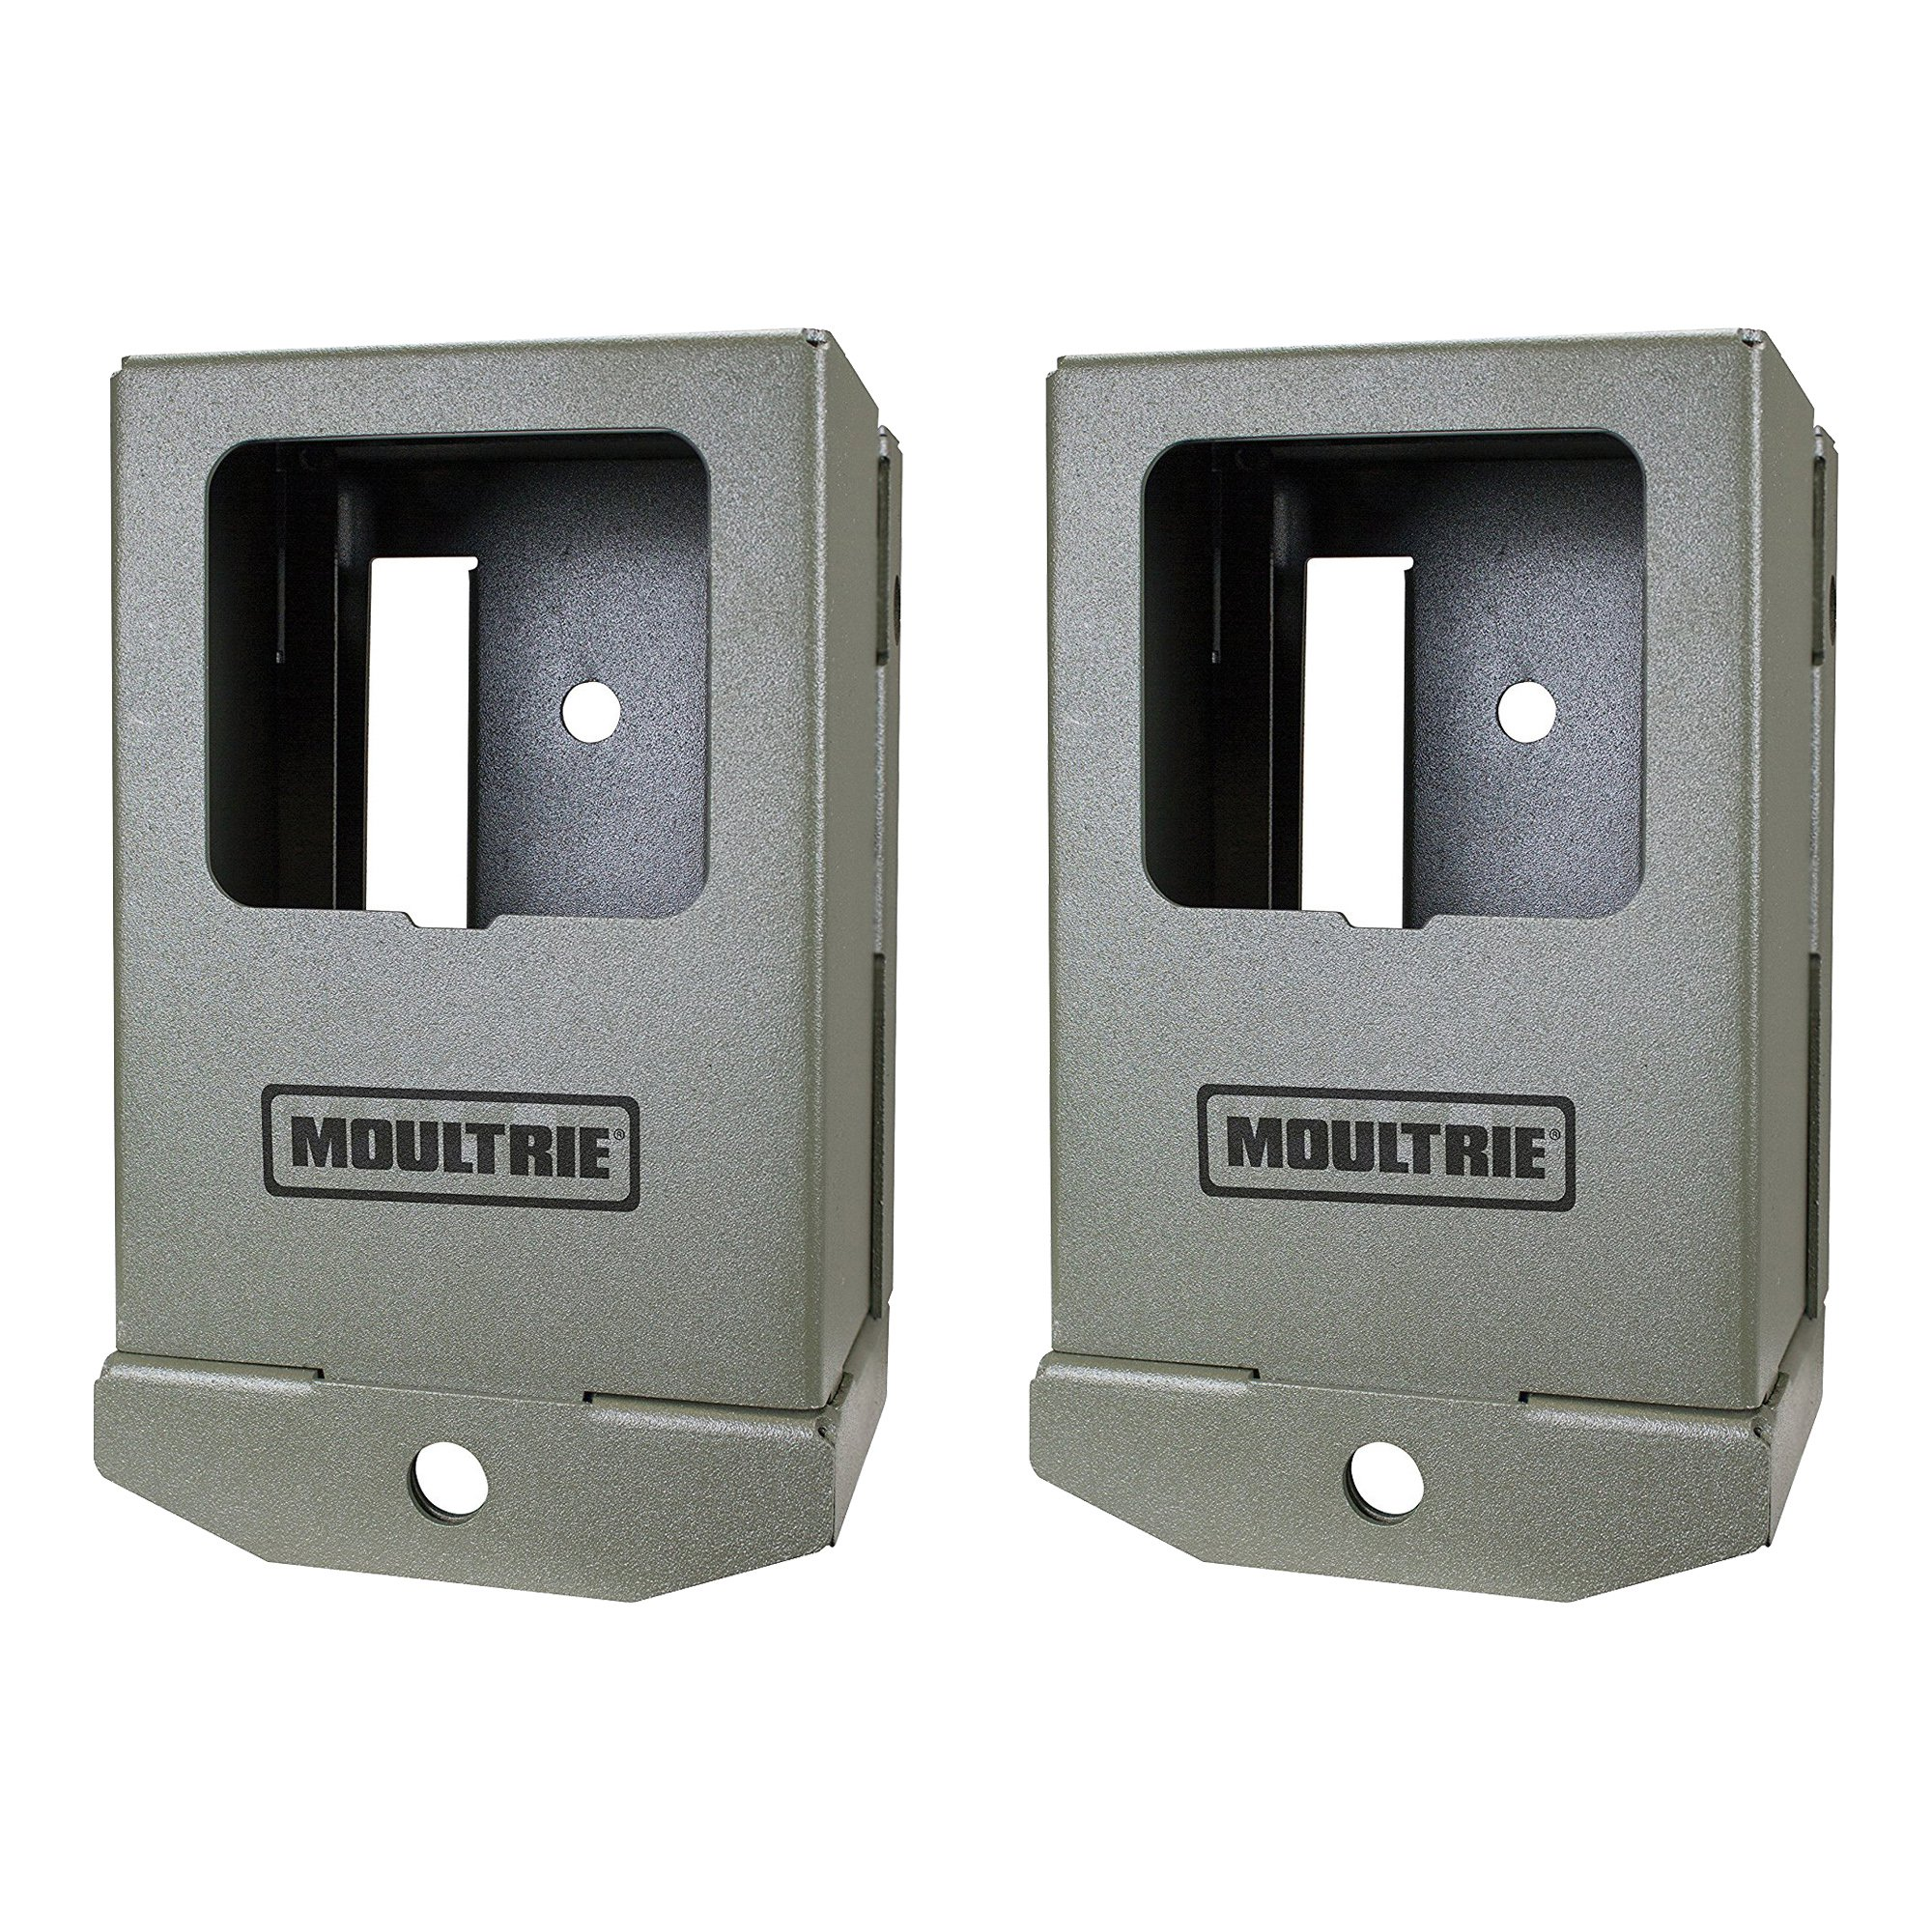 Moultrie M Series 2017 Model Game Camera Security Case Box, 2 Pack | MCA-13187 by Moultrie